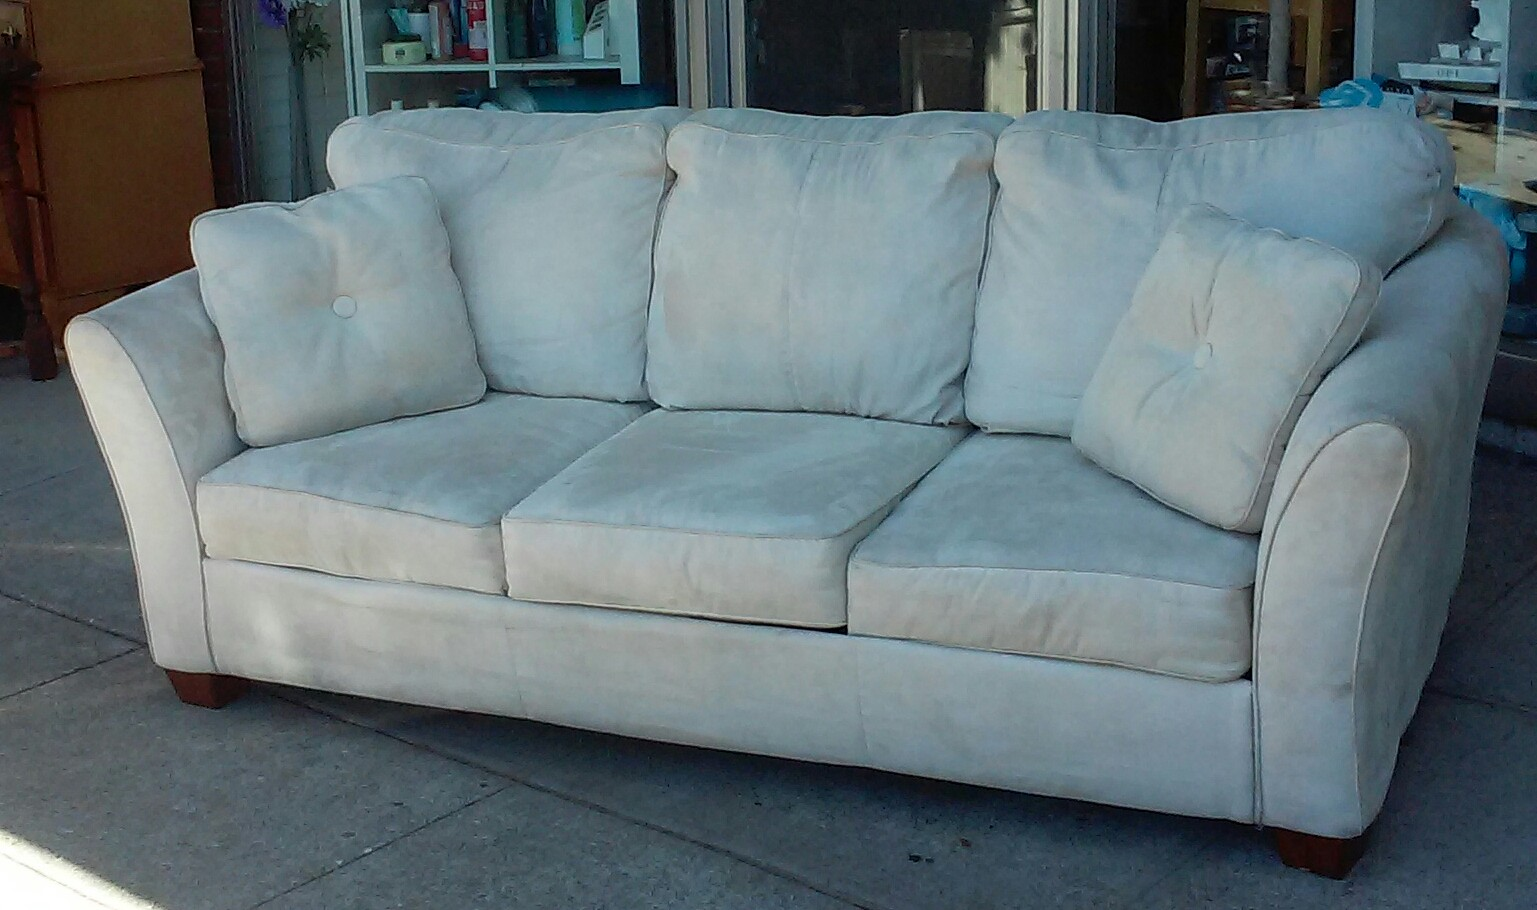 Sofa Bed Reduced Tuscan Style Leather Sofas Uhuru Furniture And Collectibles Sold